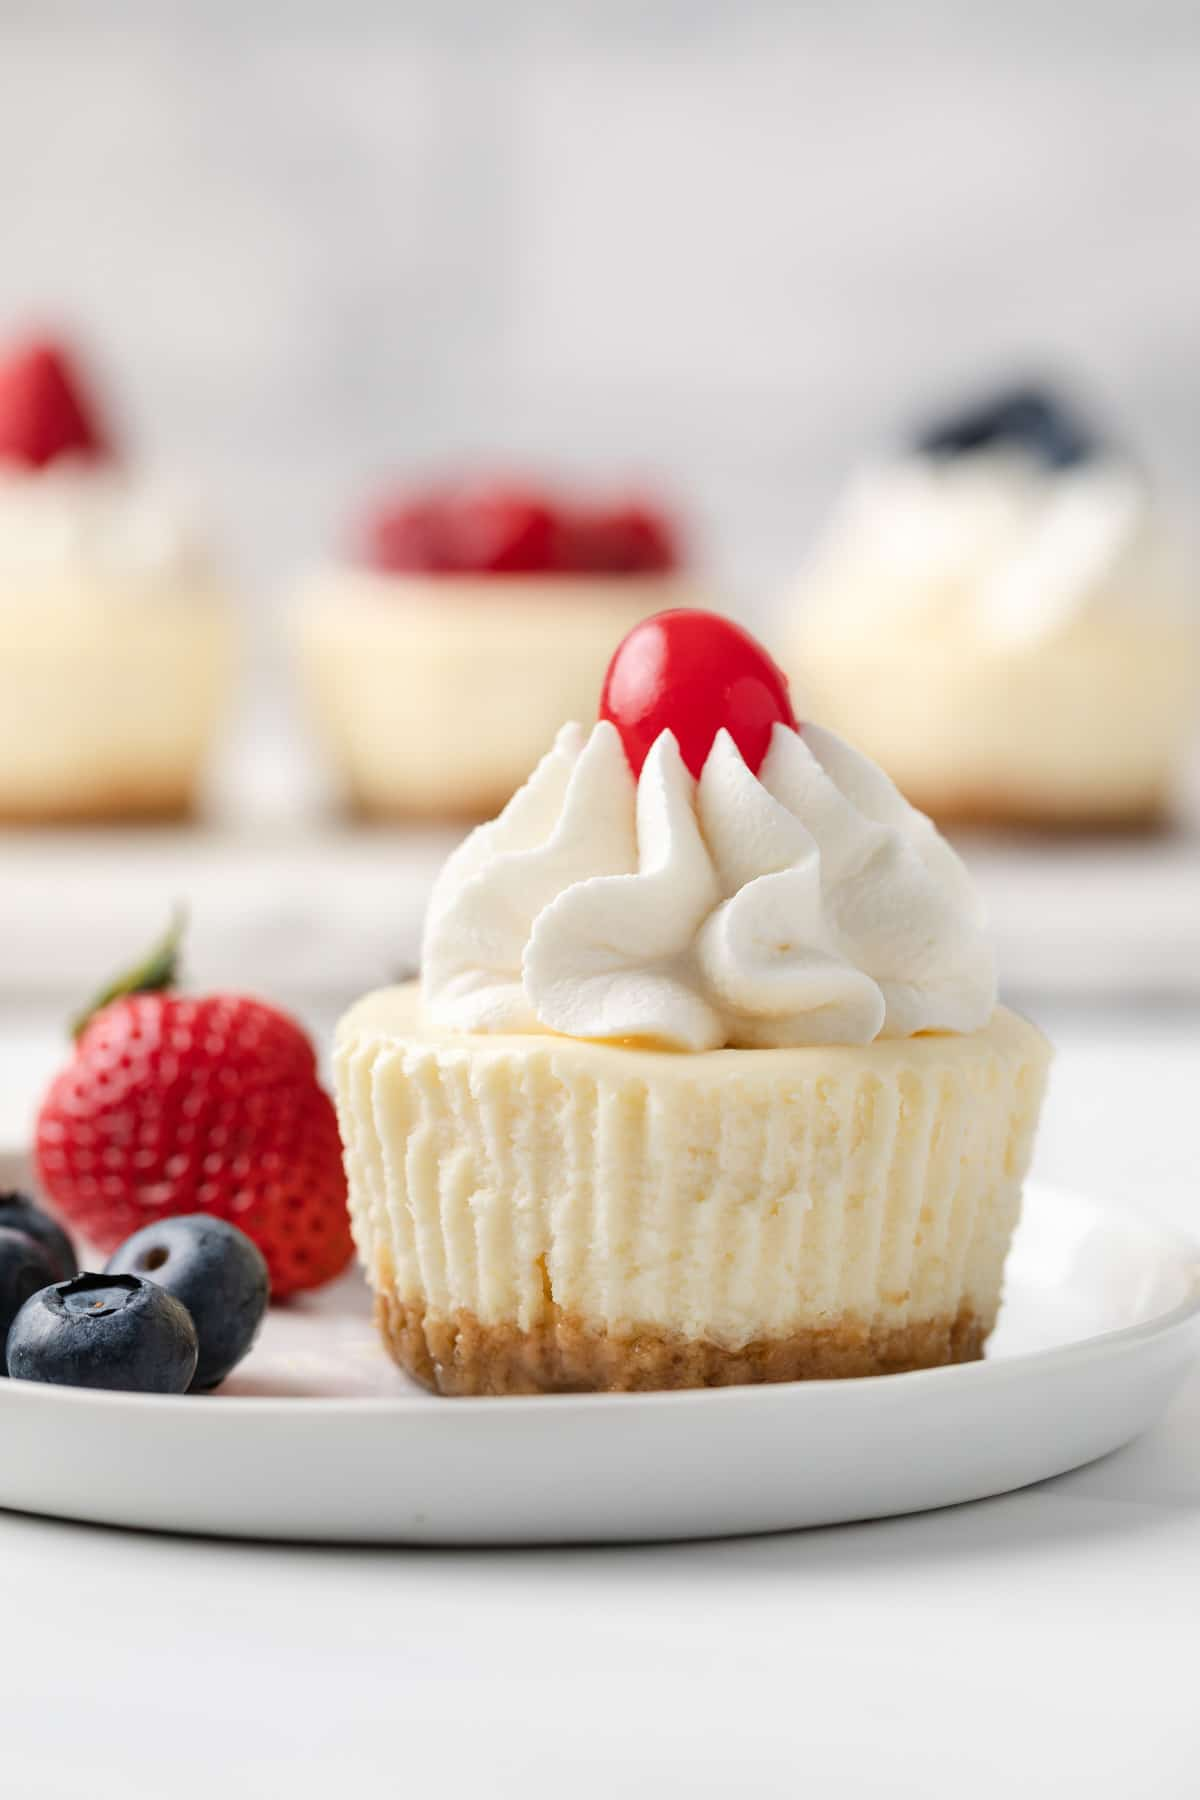 mini cheesecake topped with whipped cream and a cherry on a white plate